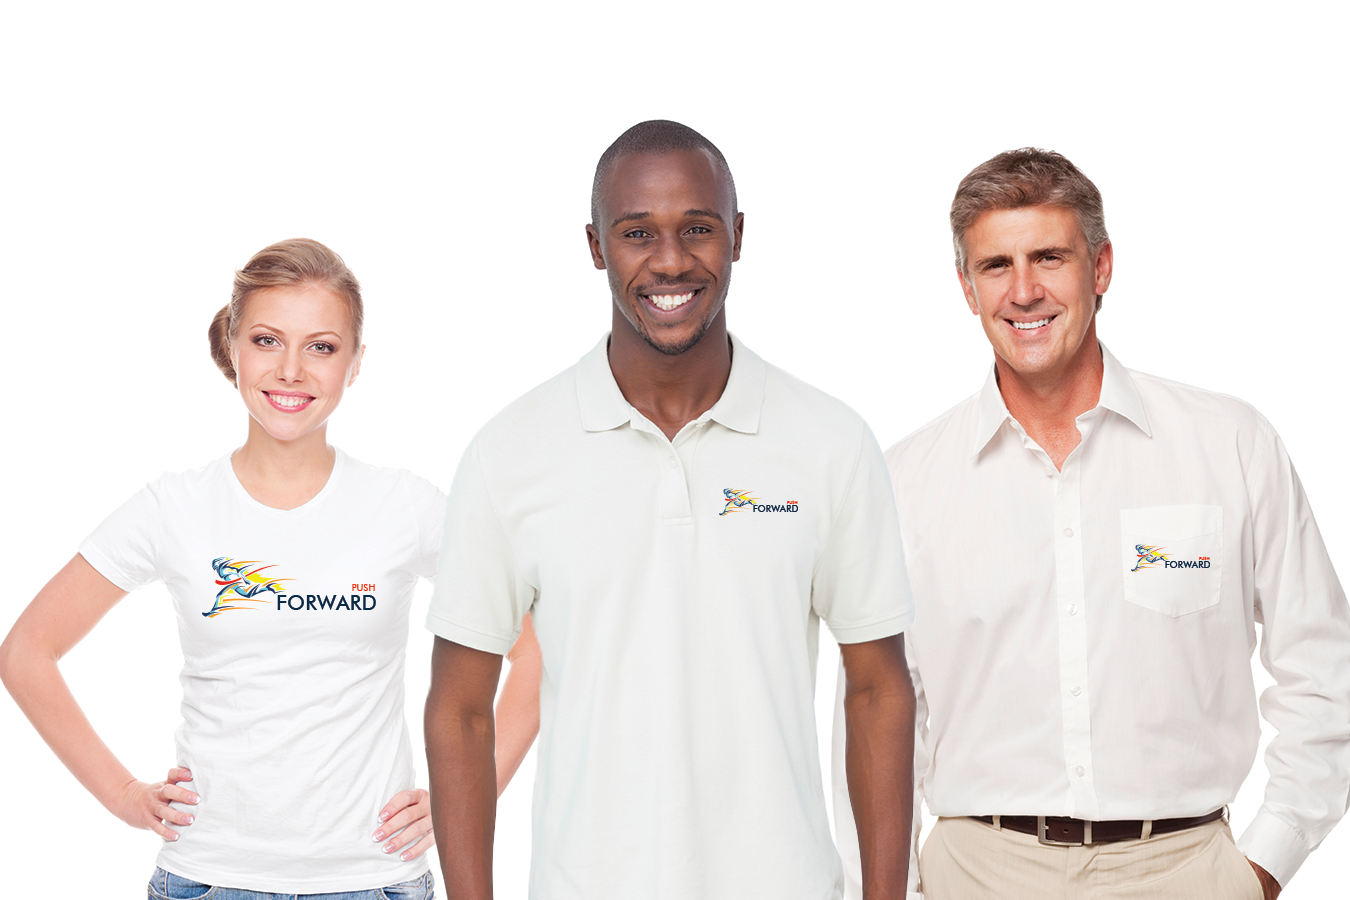 three people wearing branded shirts